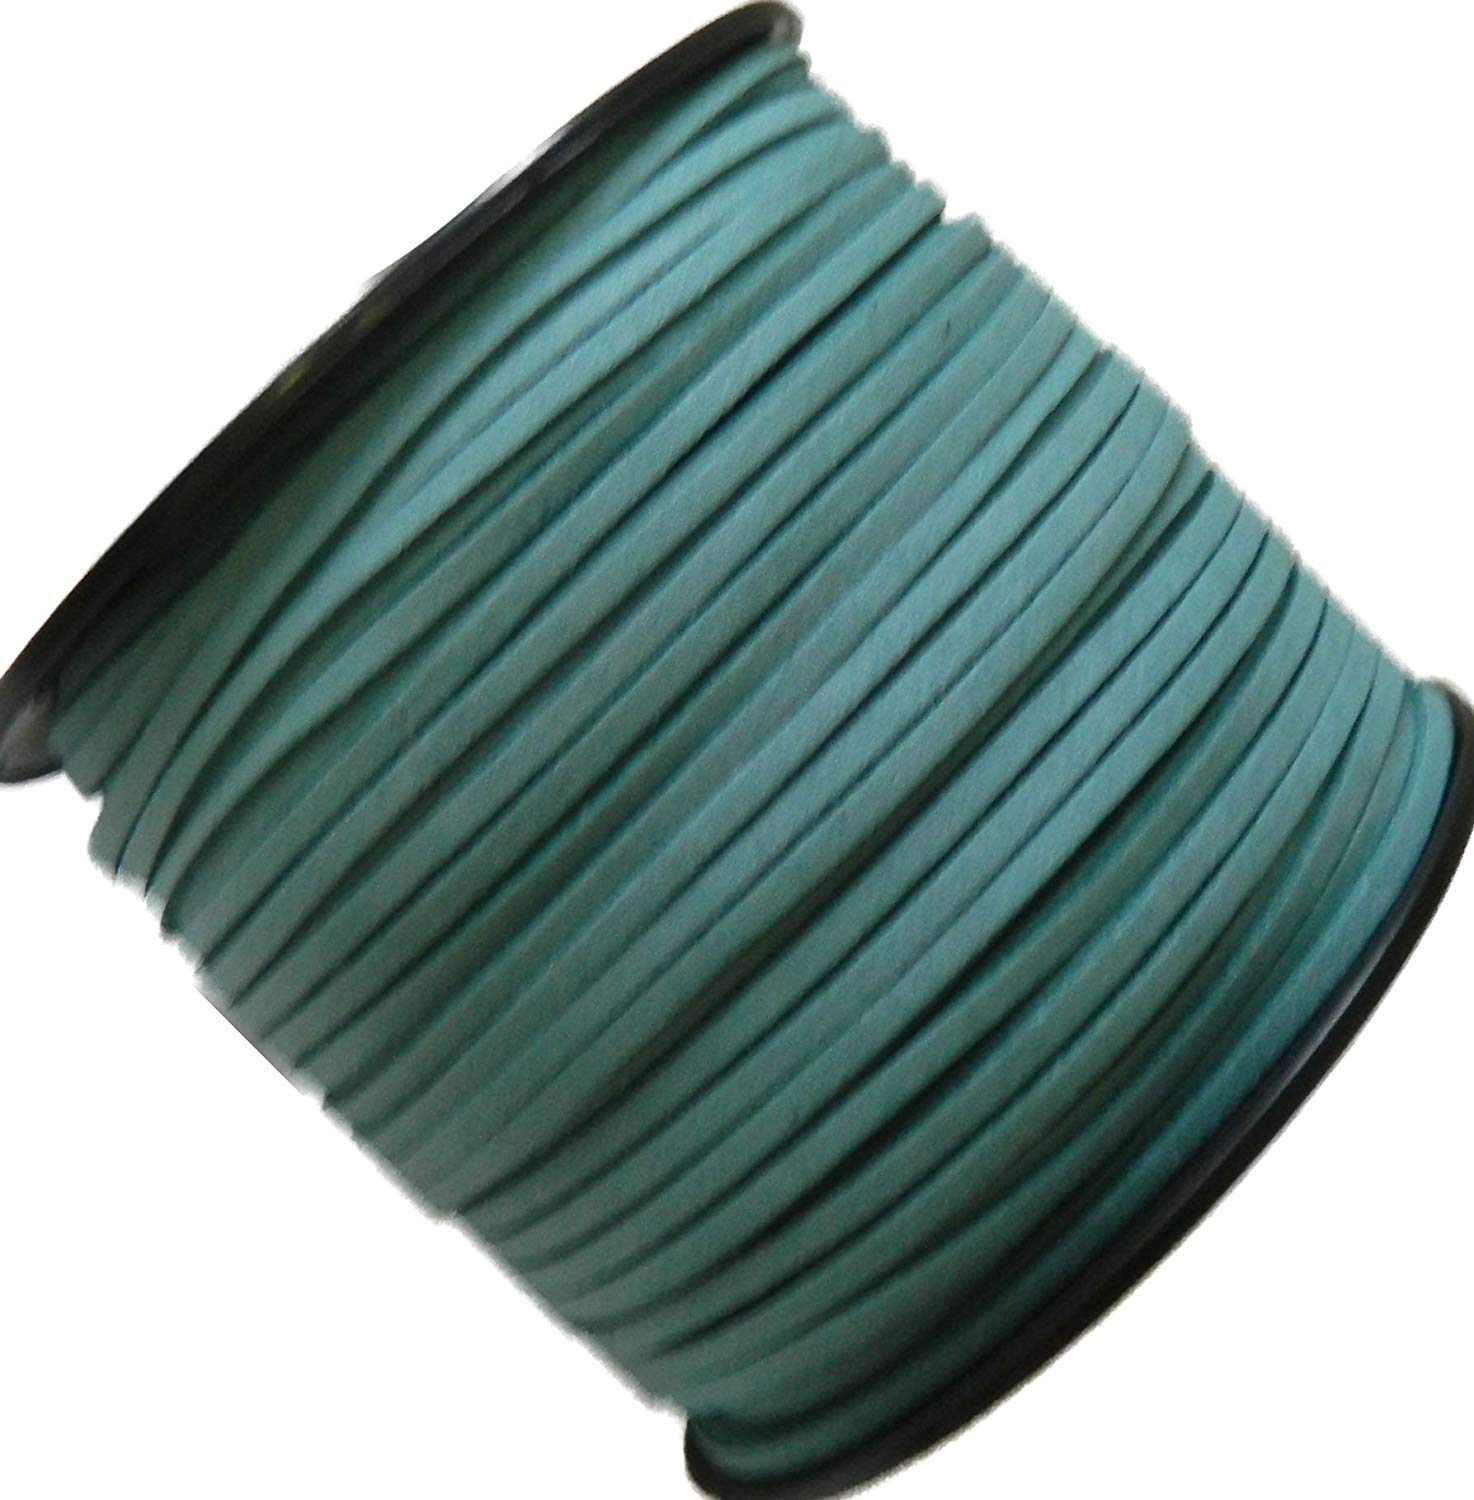 Rockin Beads Turquoise Blue Micro Fiber Faux Suede 3mm 90 Yard Spool Flat Lace Beading Craft Cord